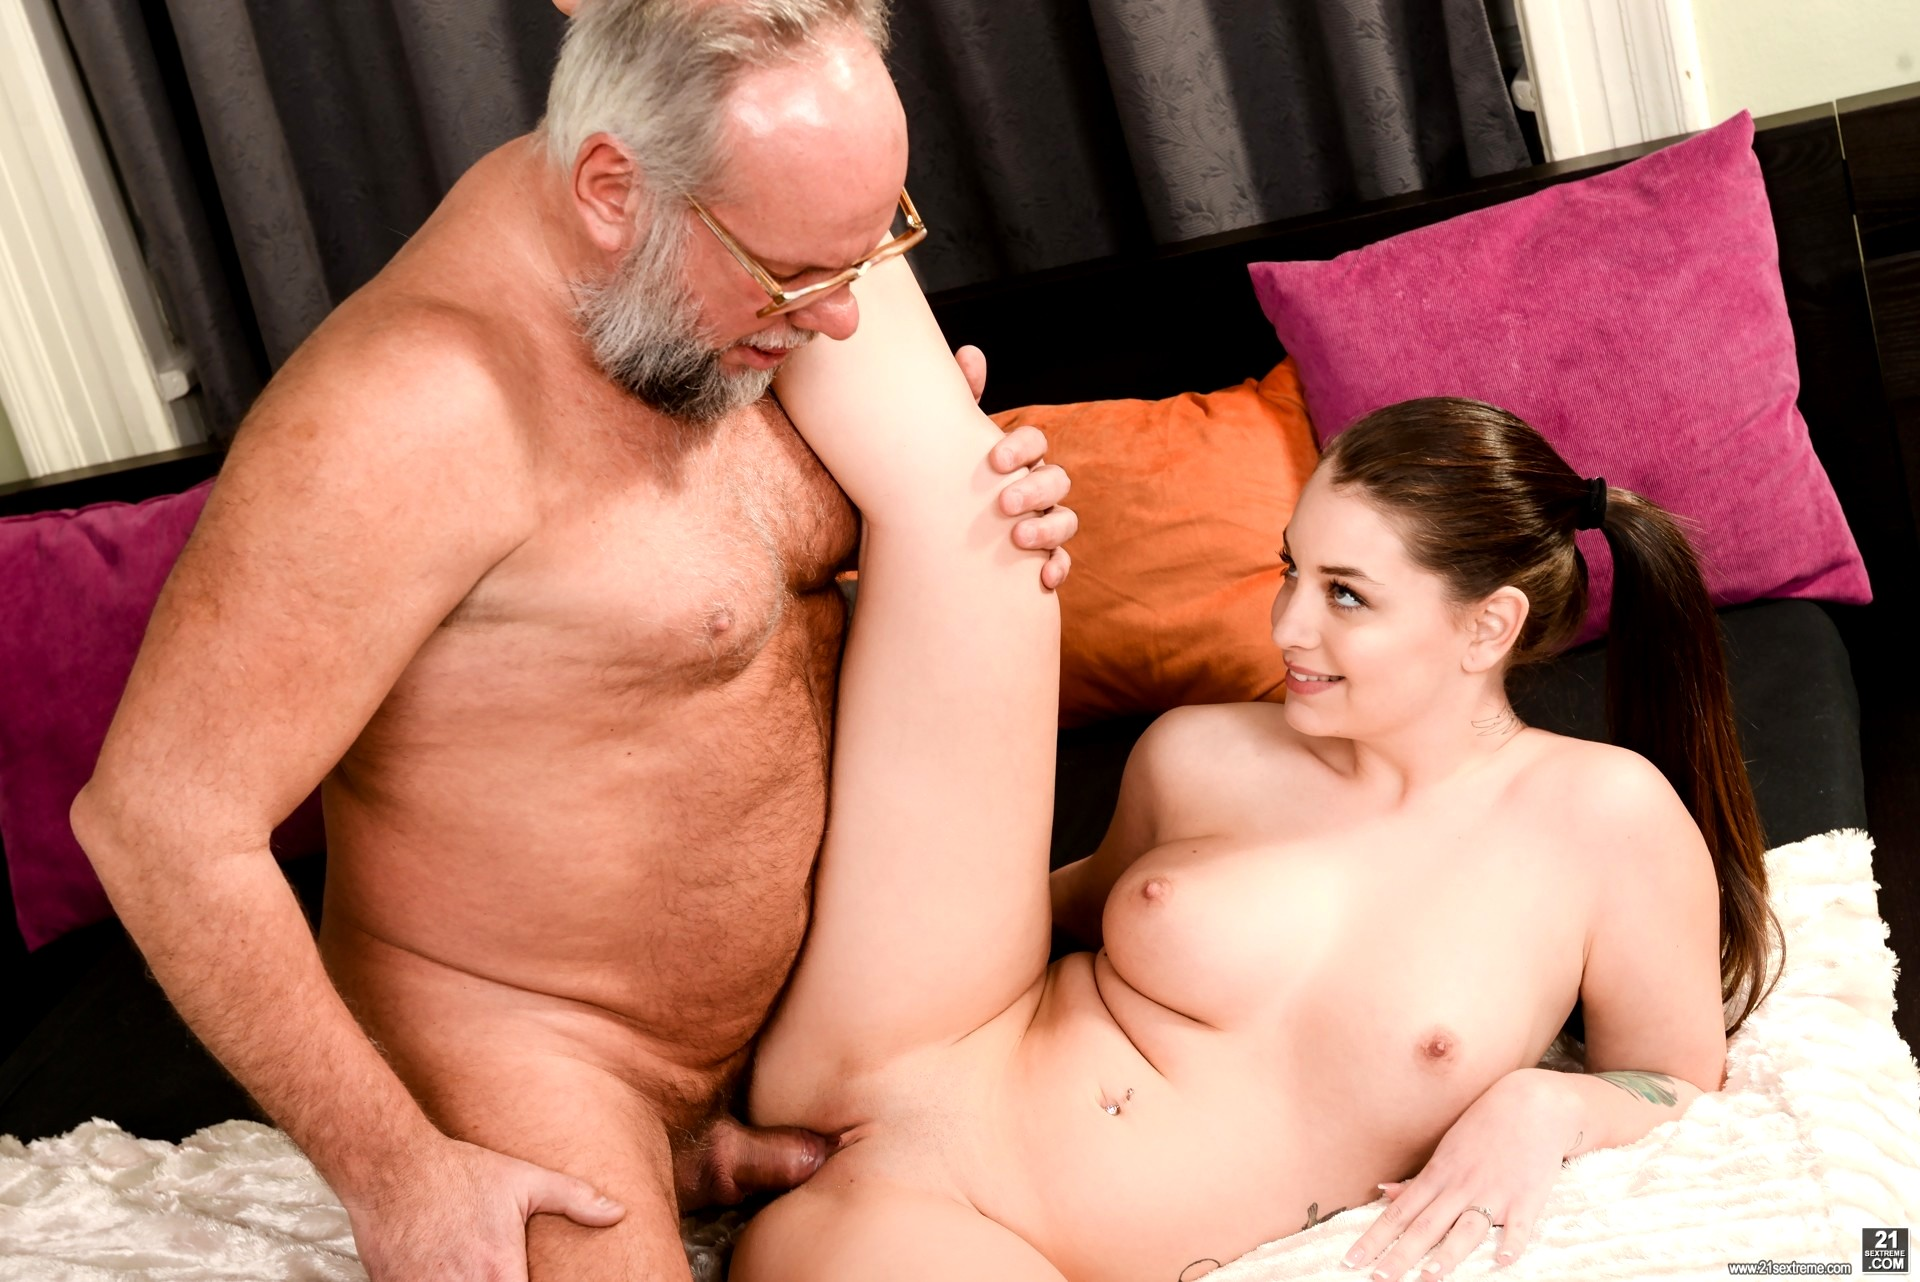 Milena devi cutie joins an old man for an anal fuck